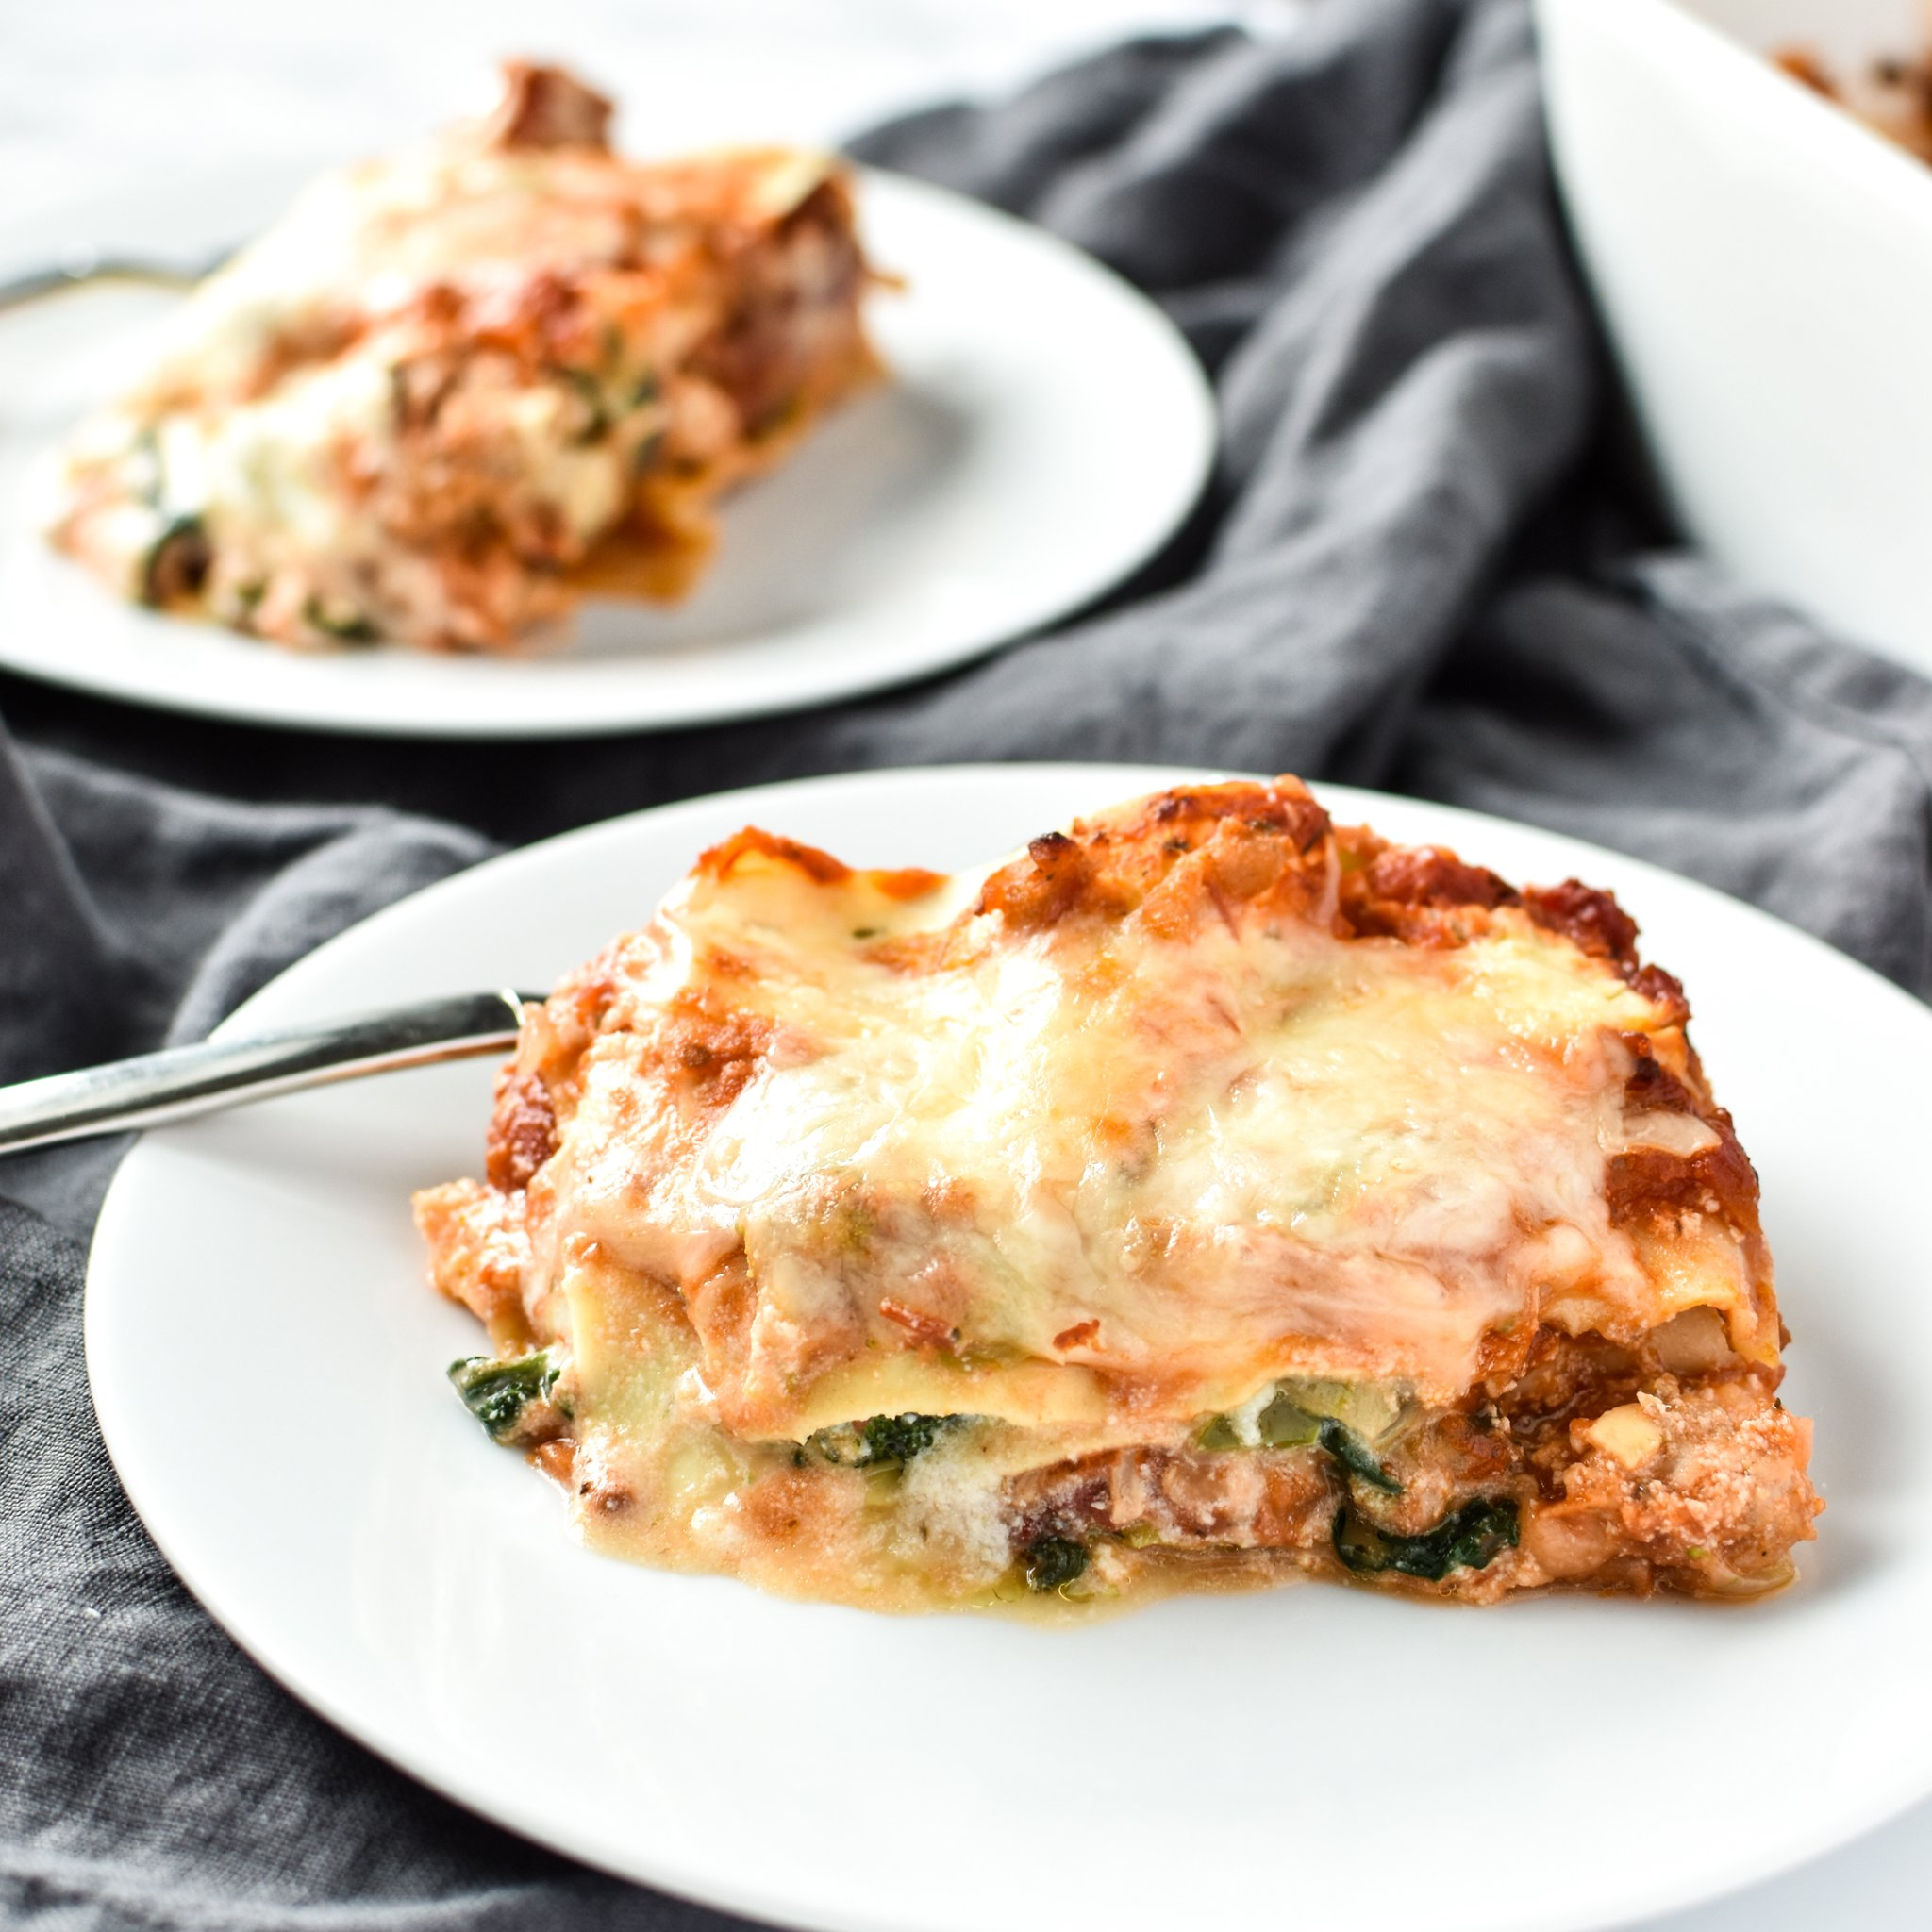 Leftover Vegetable Italian Chicken Lasagna Recipe - Use up leftover veggies in my favorite deliciously layered ground chicken lasagna! - ProjectMealPlan.com